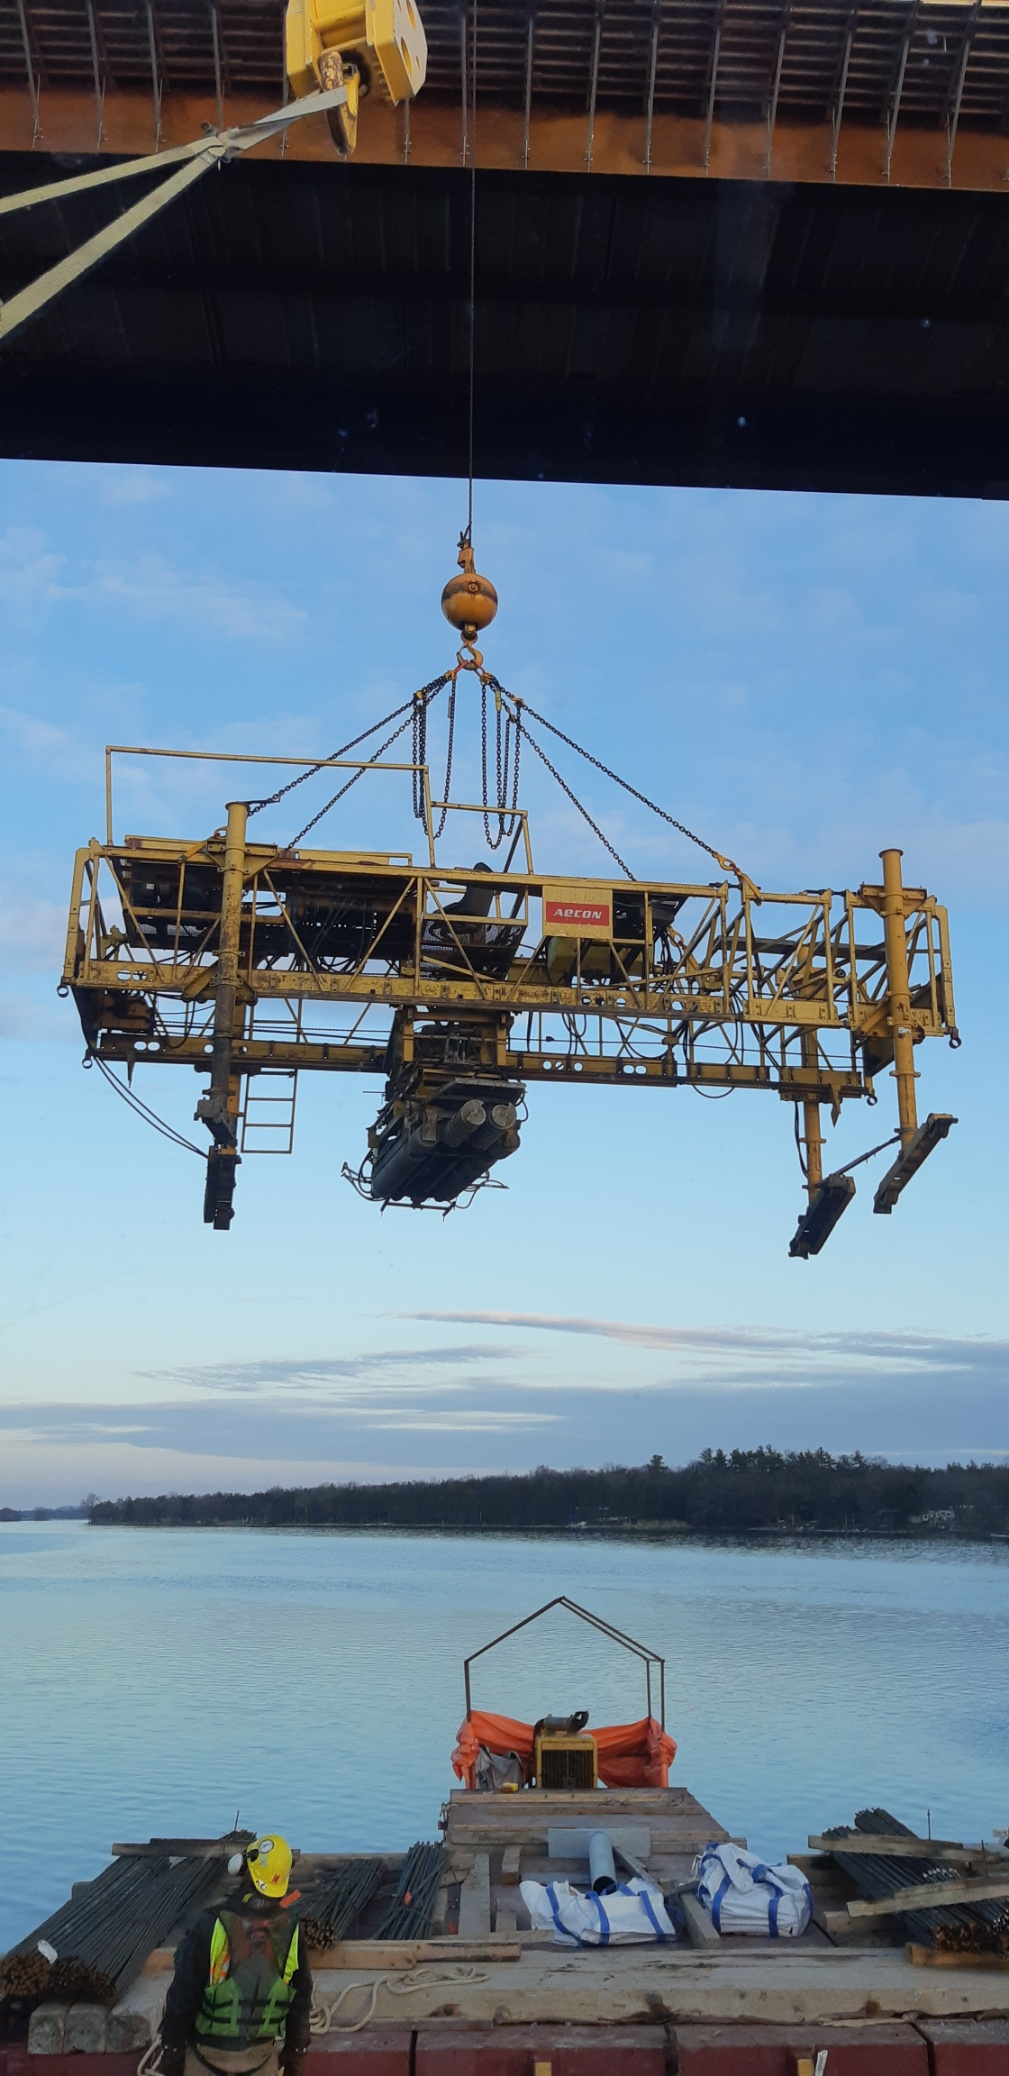 Concrete finisher lifted to deck